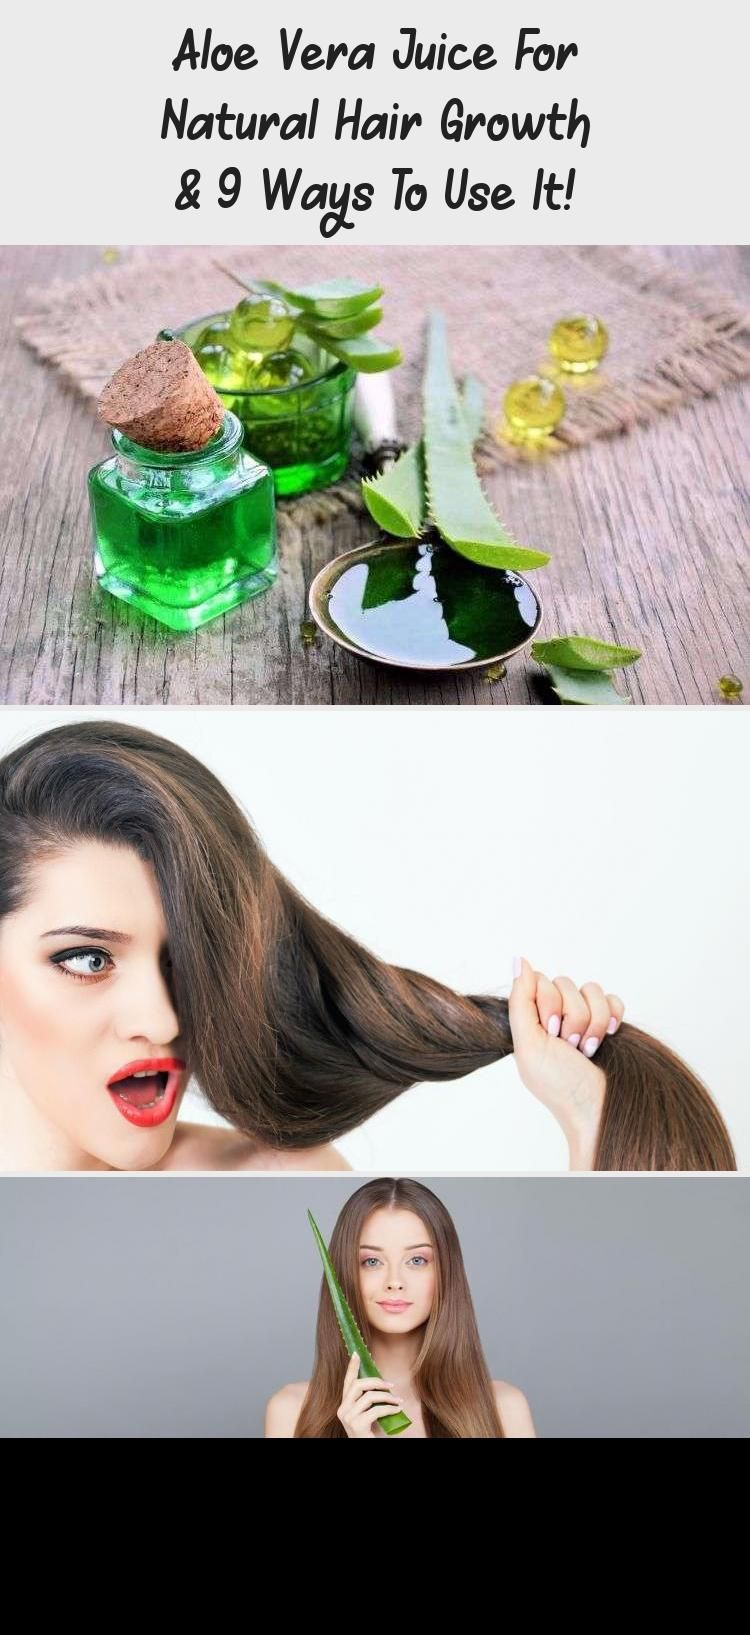 Hair Growth Supplement} and Aloe Vera Juice for Natural Hair Growth #hairgrowthQuotes #Rapidhairgrowth #hairgrowthSmoothie #hairgrowthSerum #hairgrowthBakingSoda